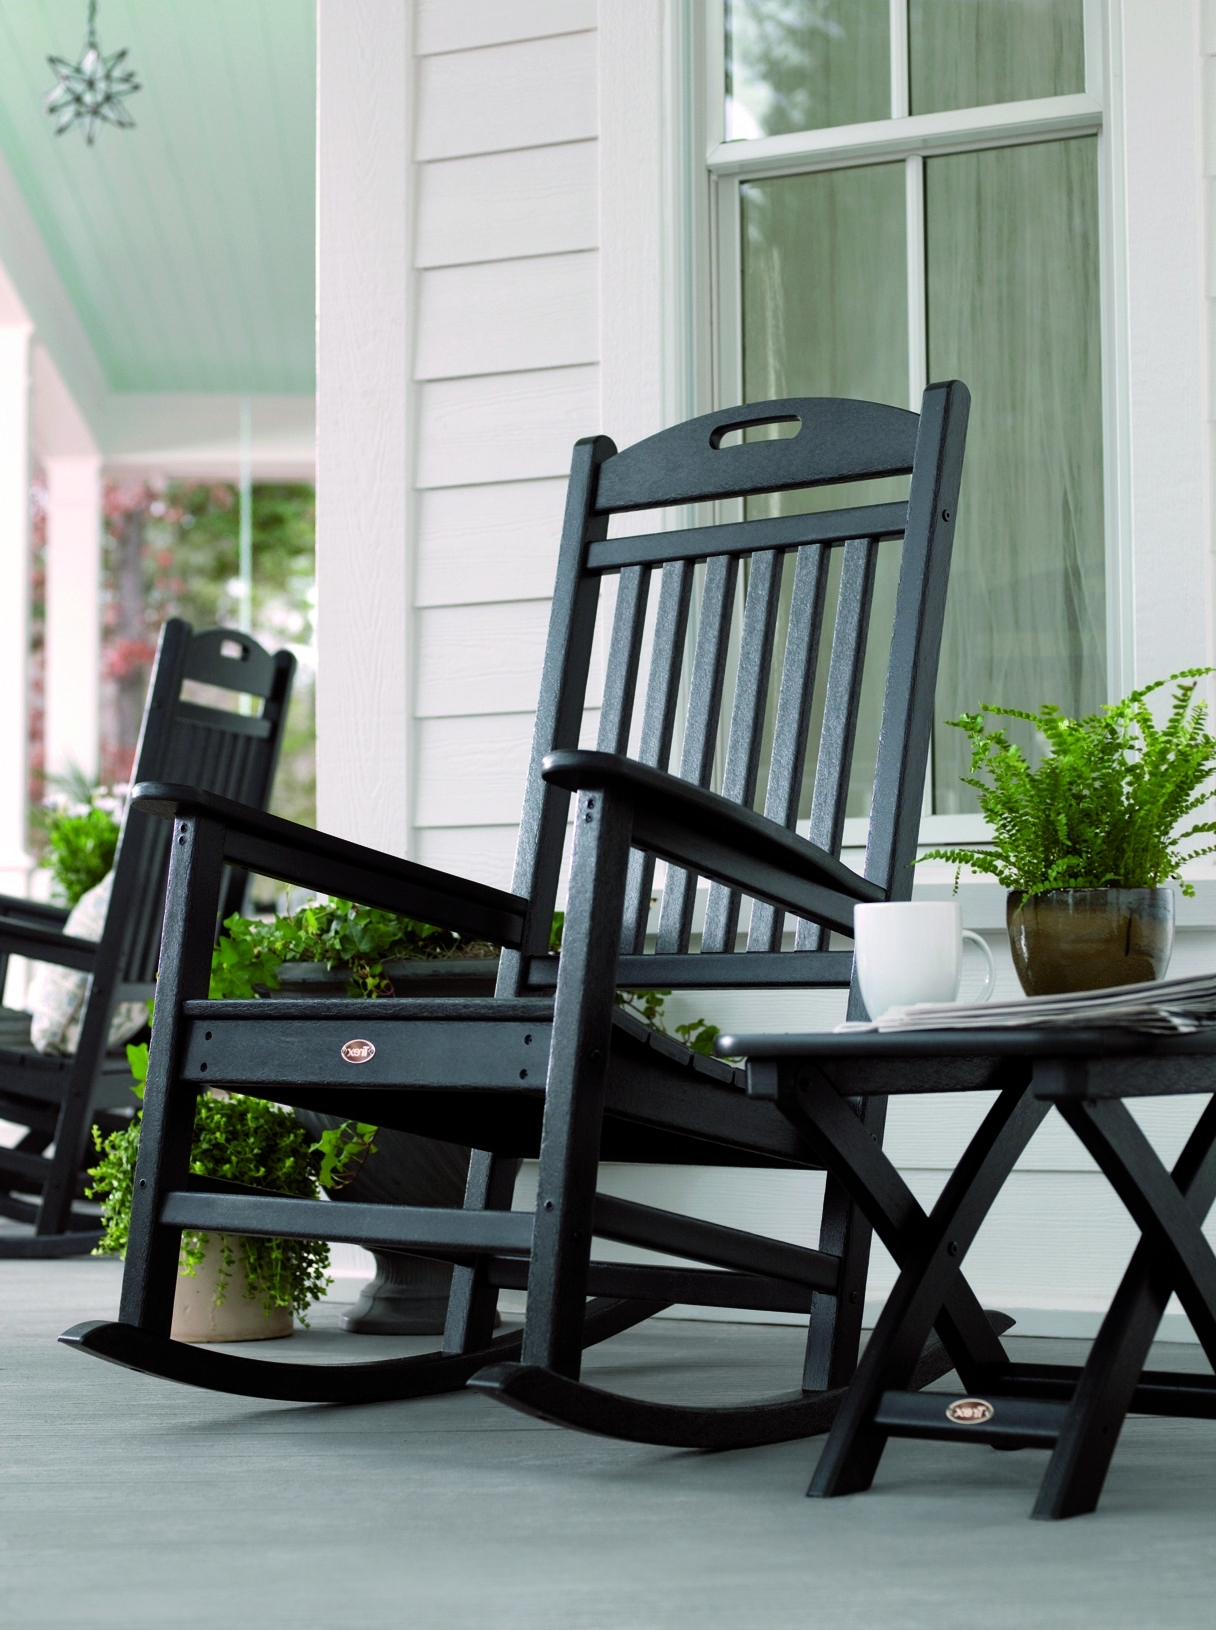 Outdoor Rocking Throughout Patio Rocking Chairs And Table (View 8 of 20)